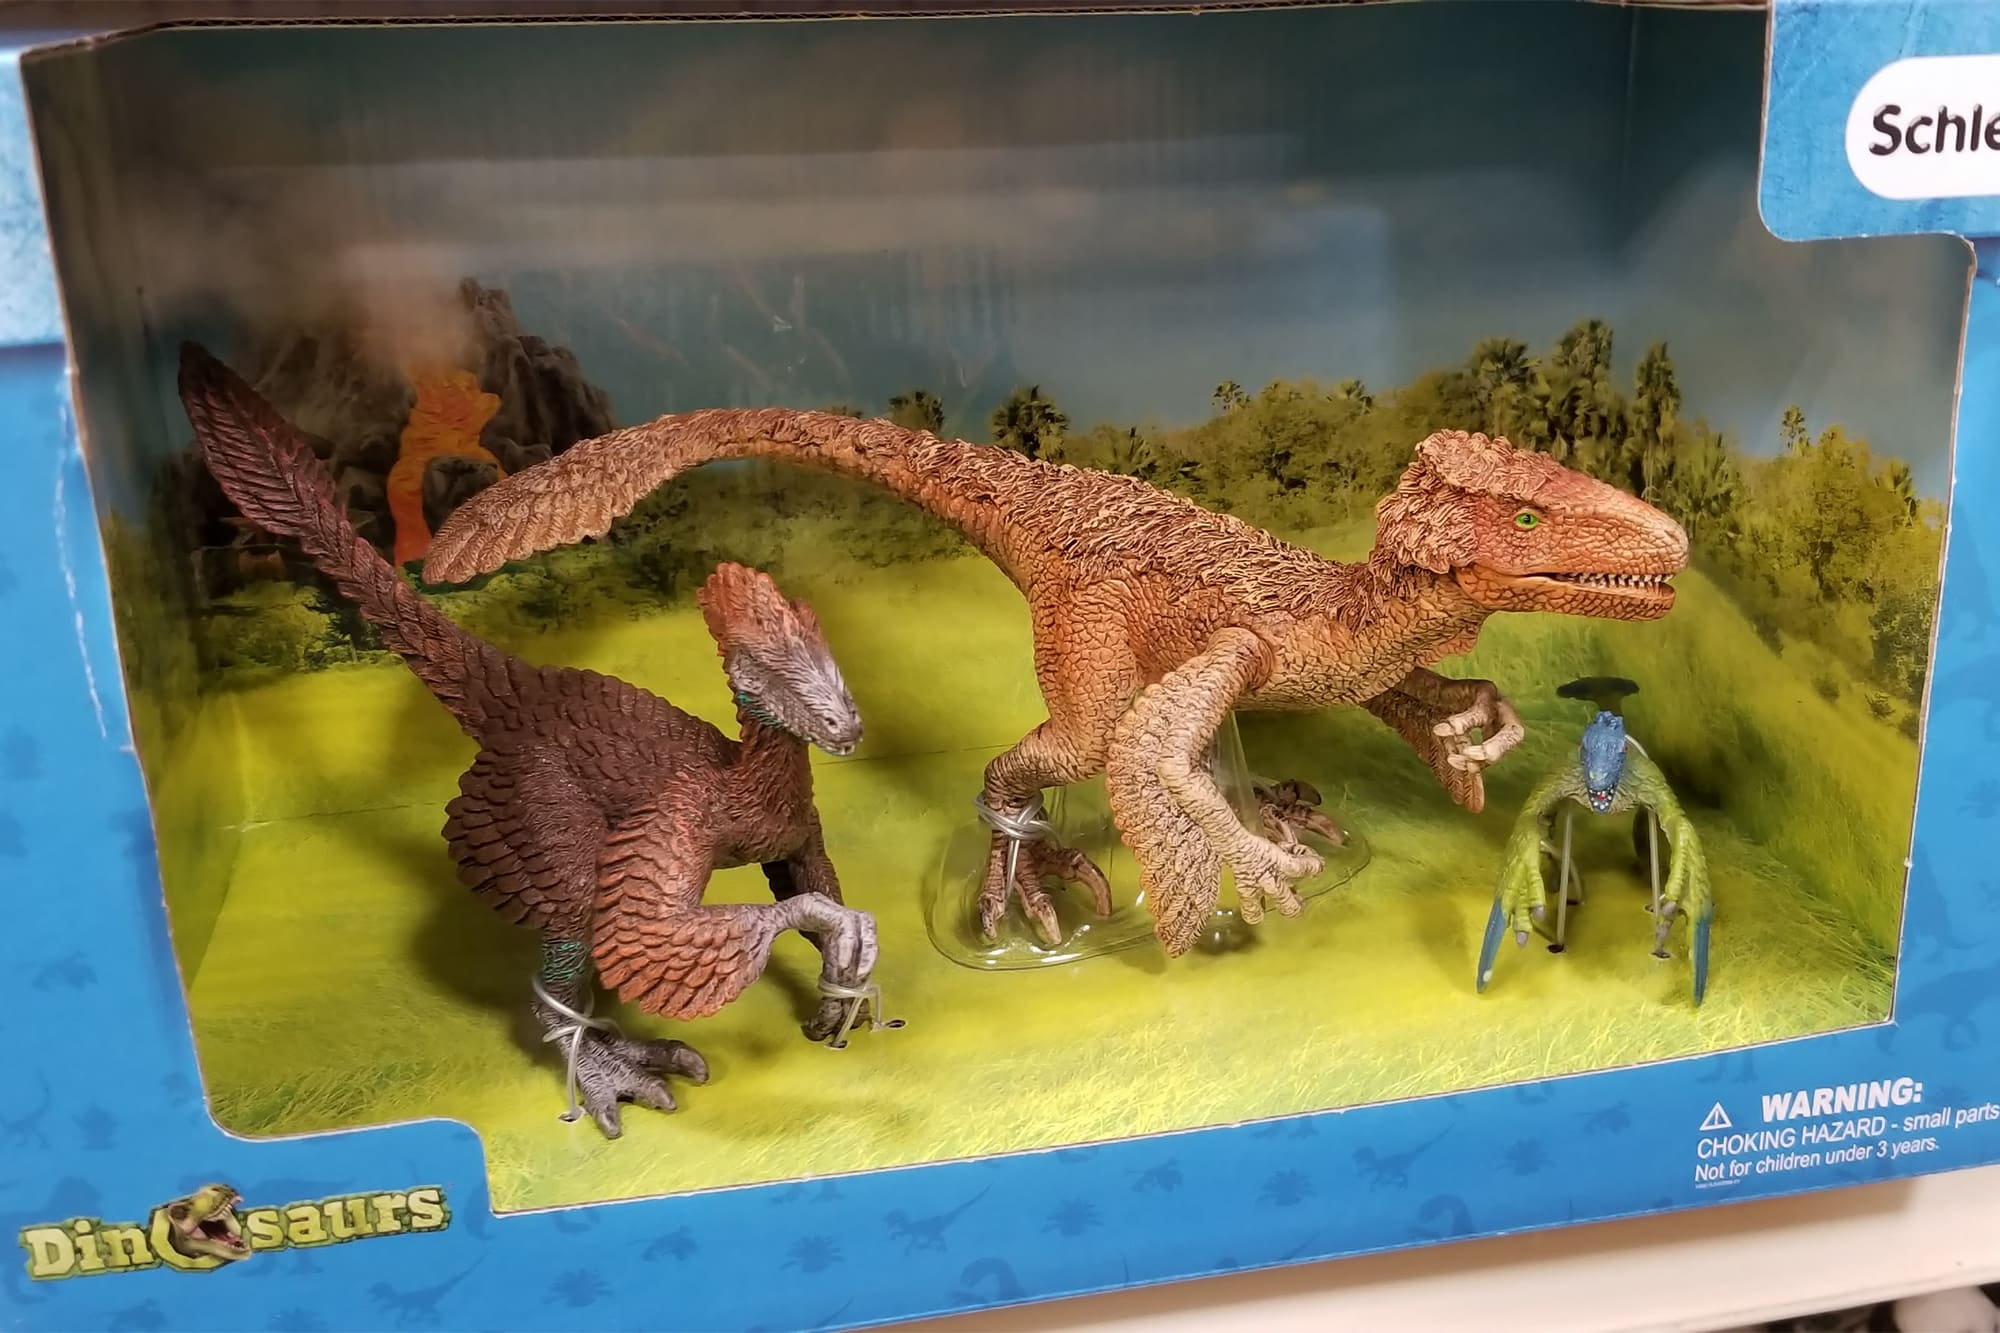 Dinosaur toys with feathers on them